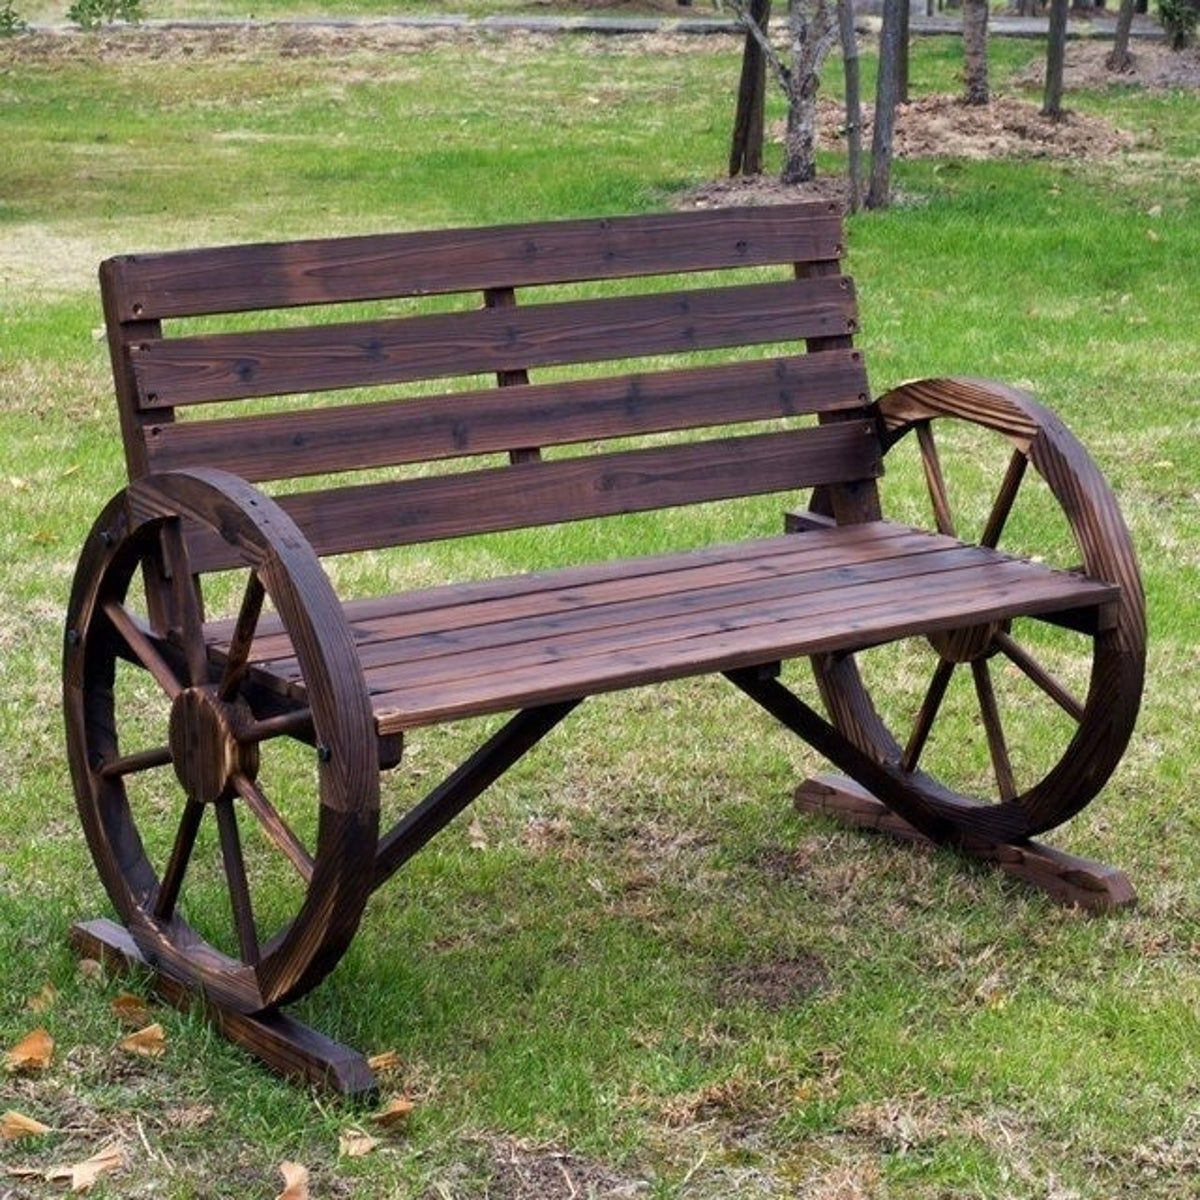 Wooden Farmhouse Bench Decor Rustic Wagon Wheel Bench Wooden Wagon Wheels Wooden Wagon